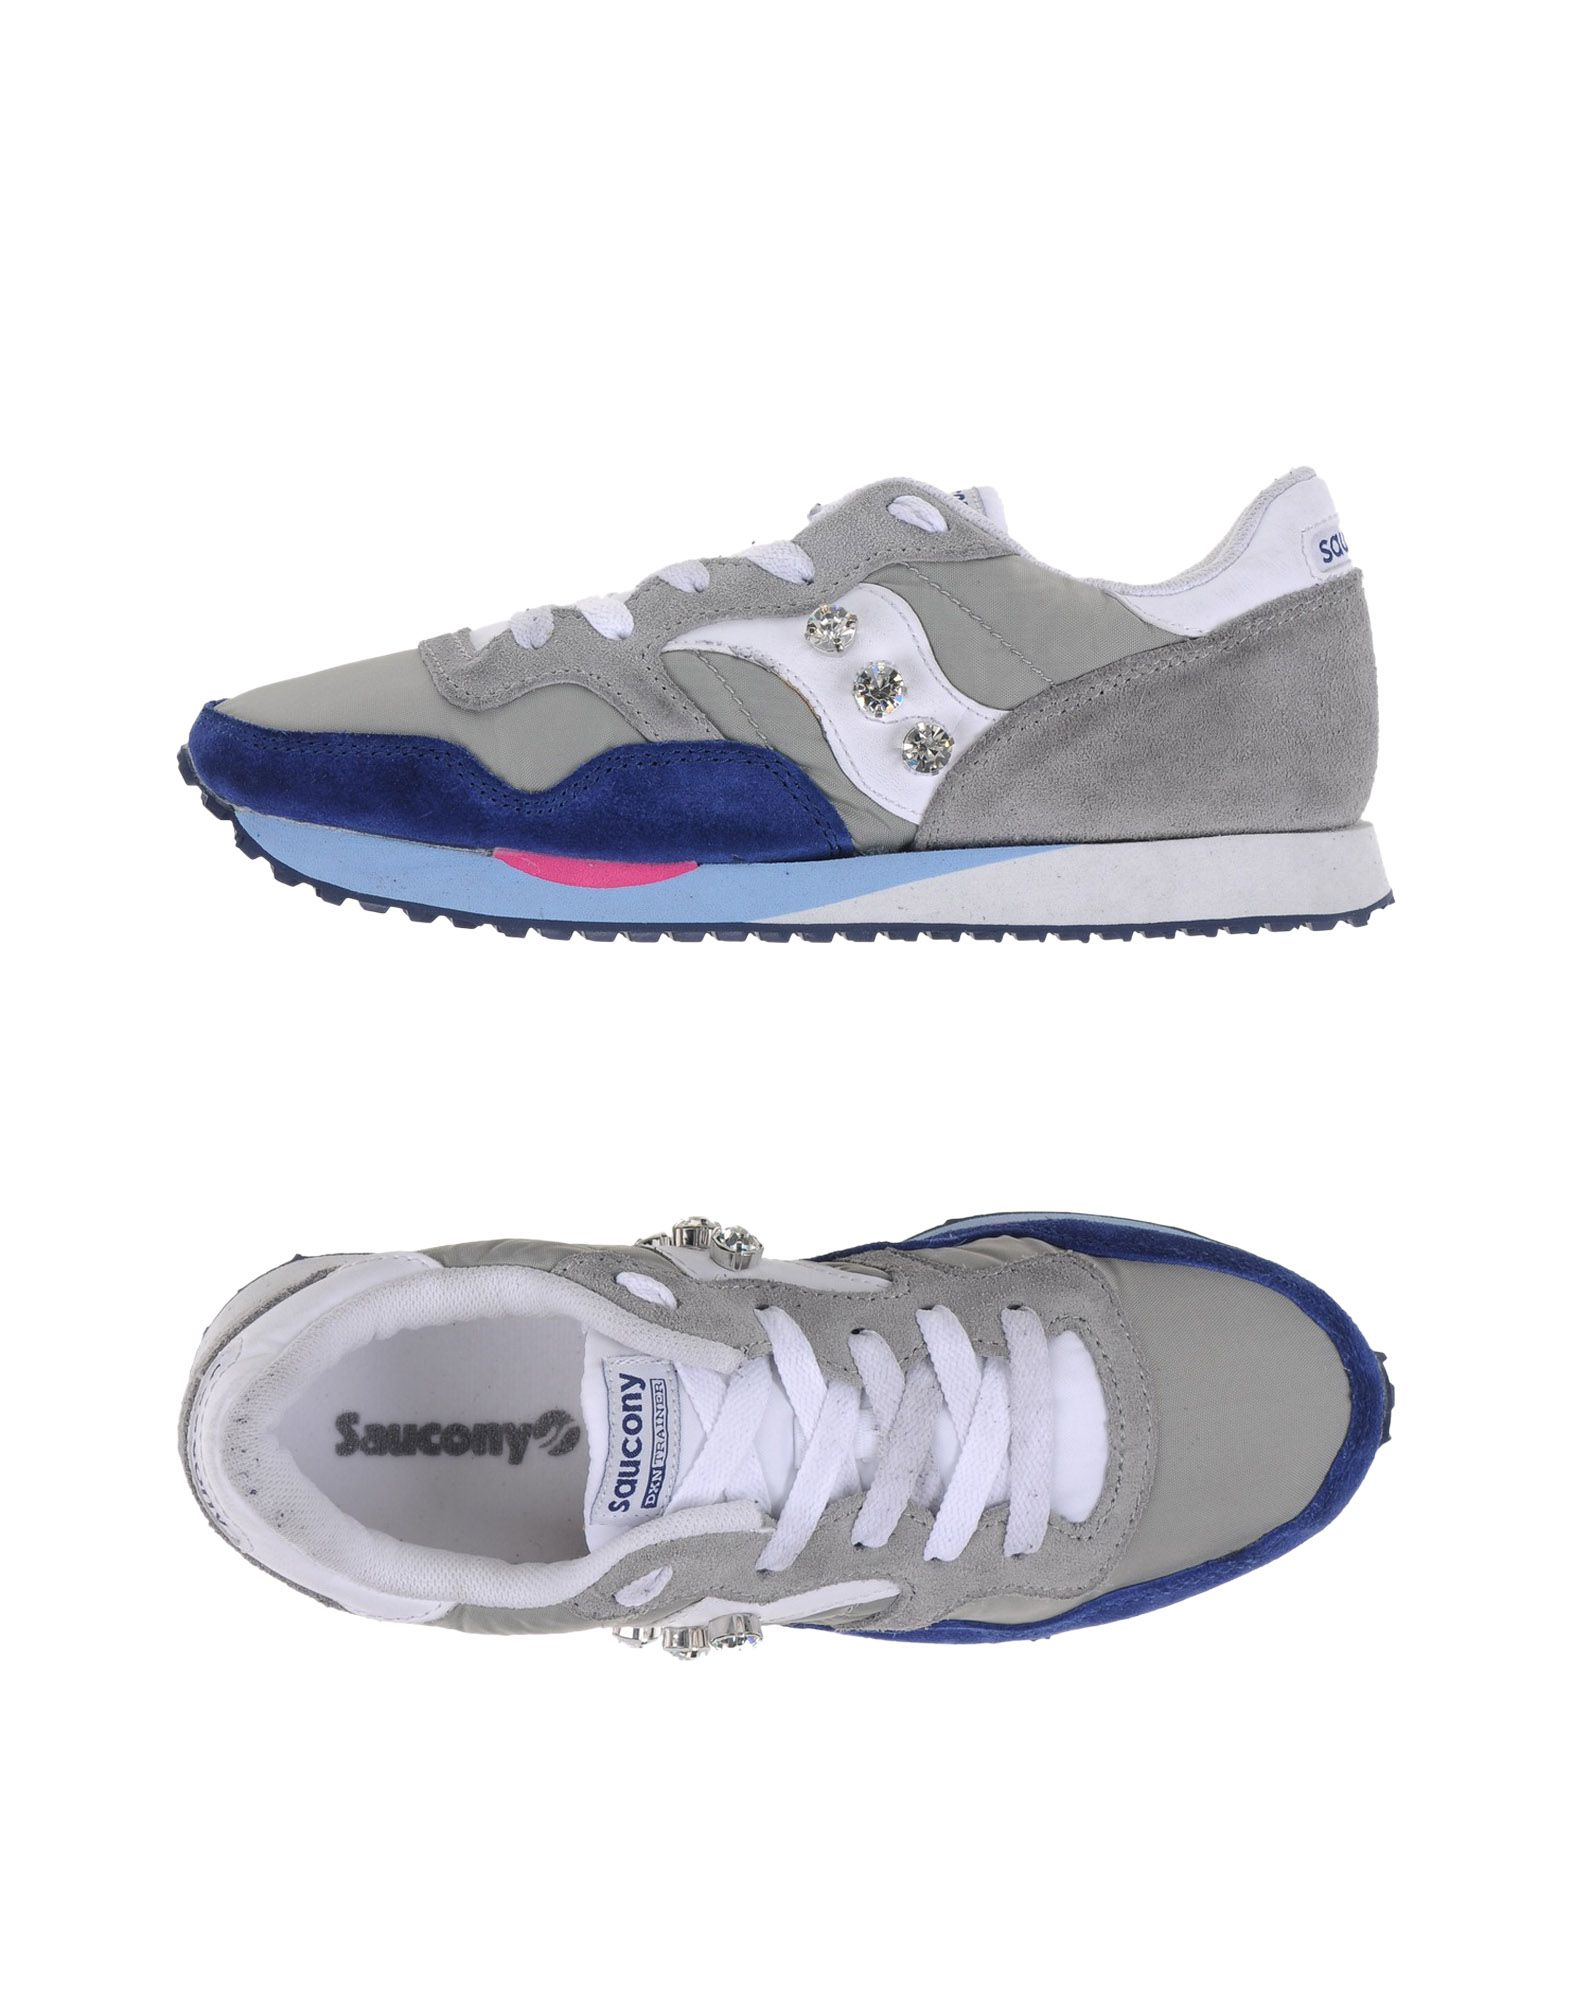 Baskets Saucony Dxn Trainer